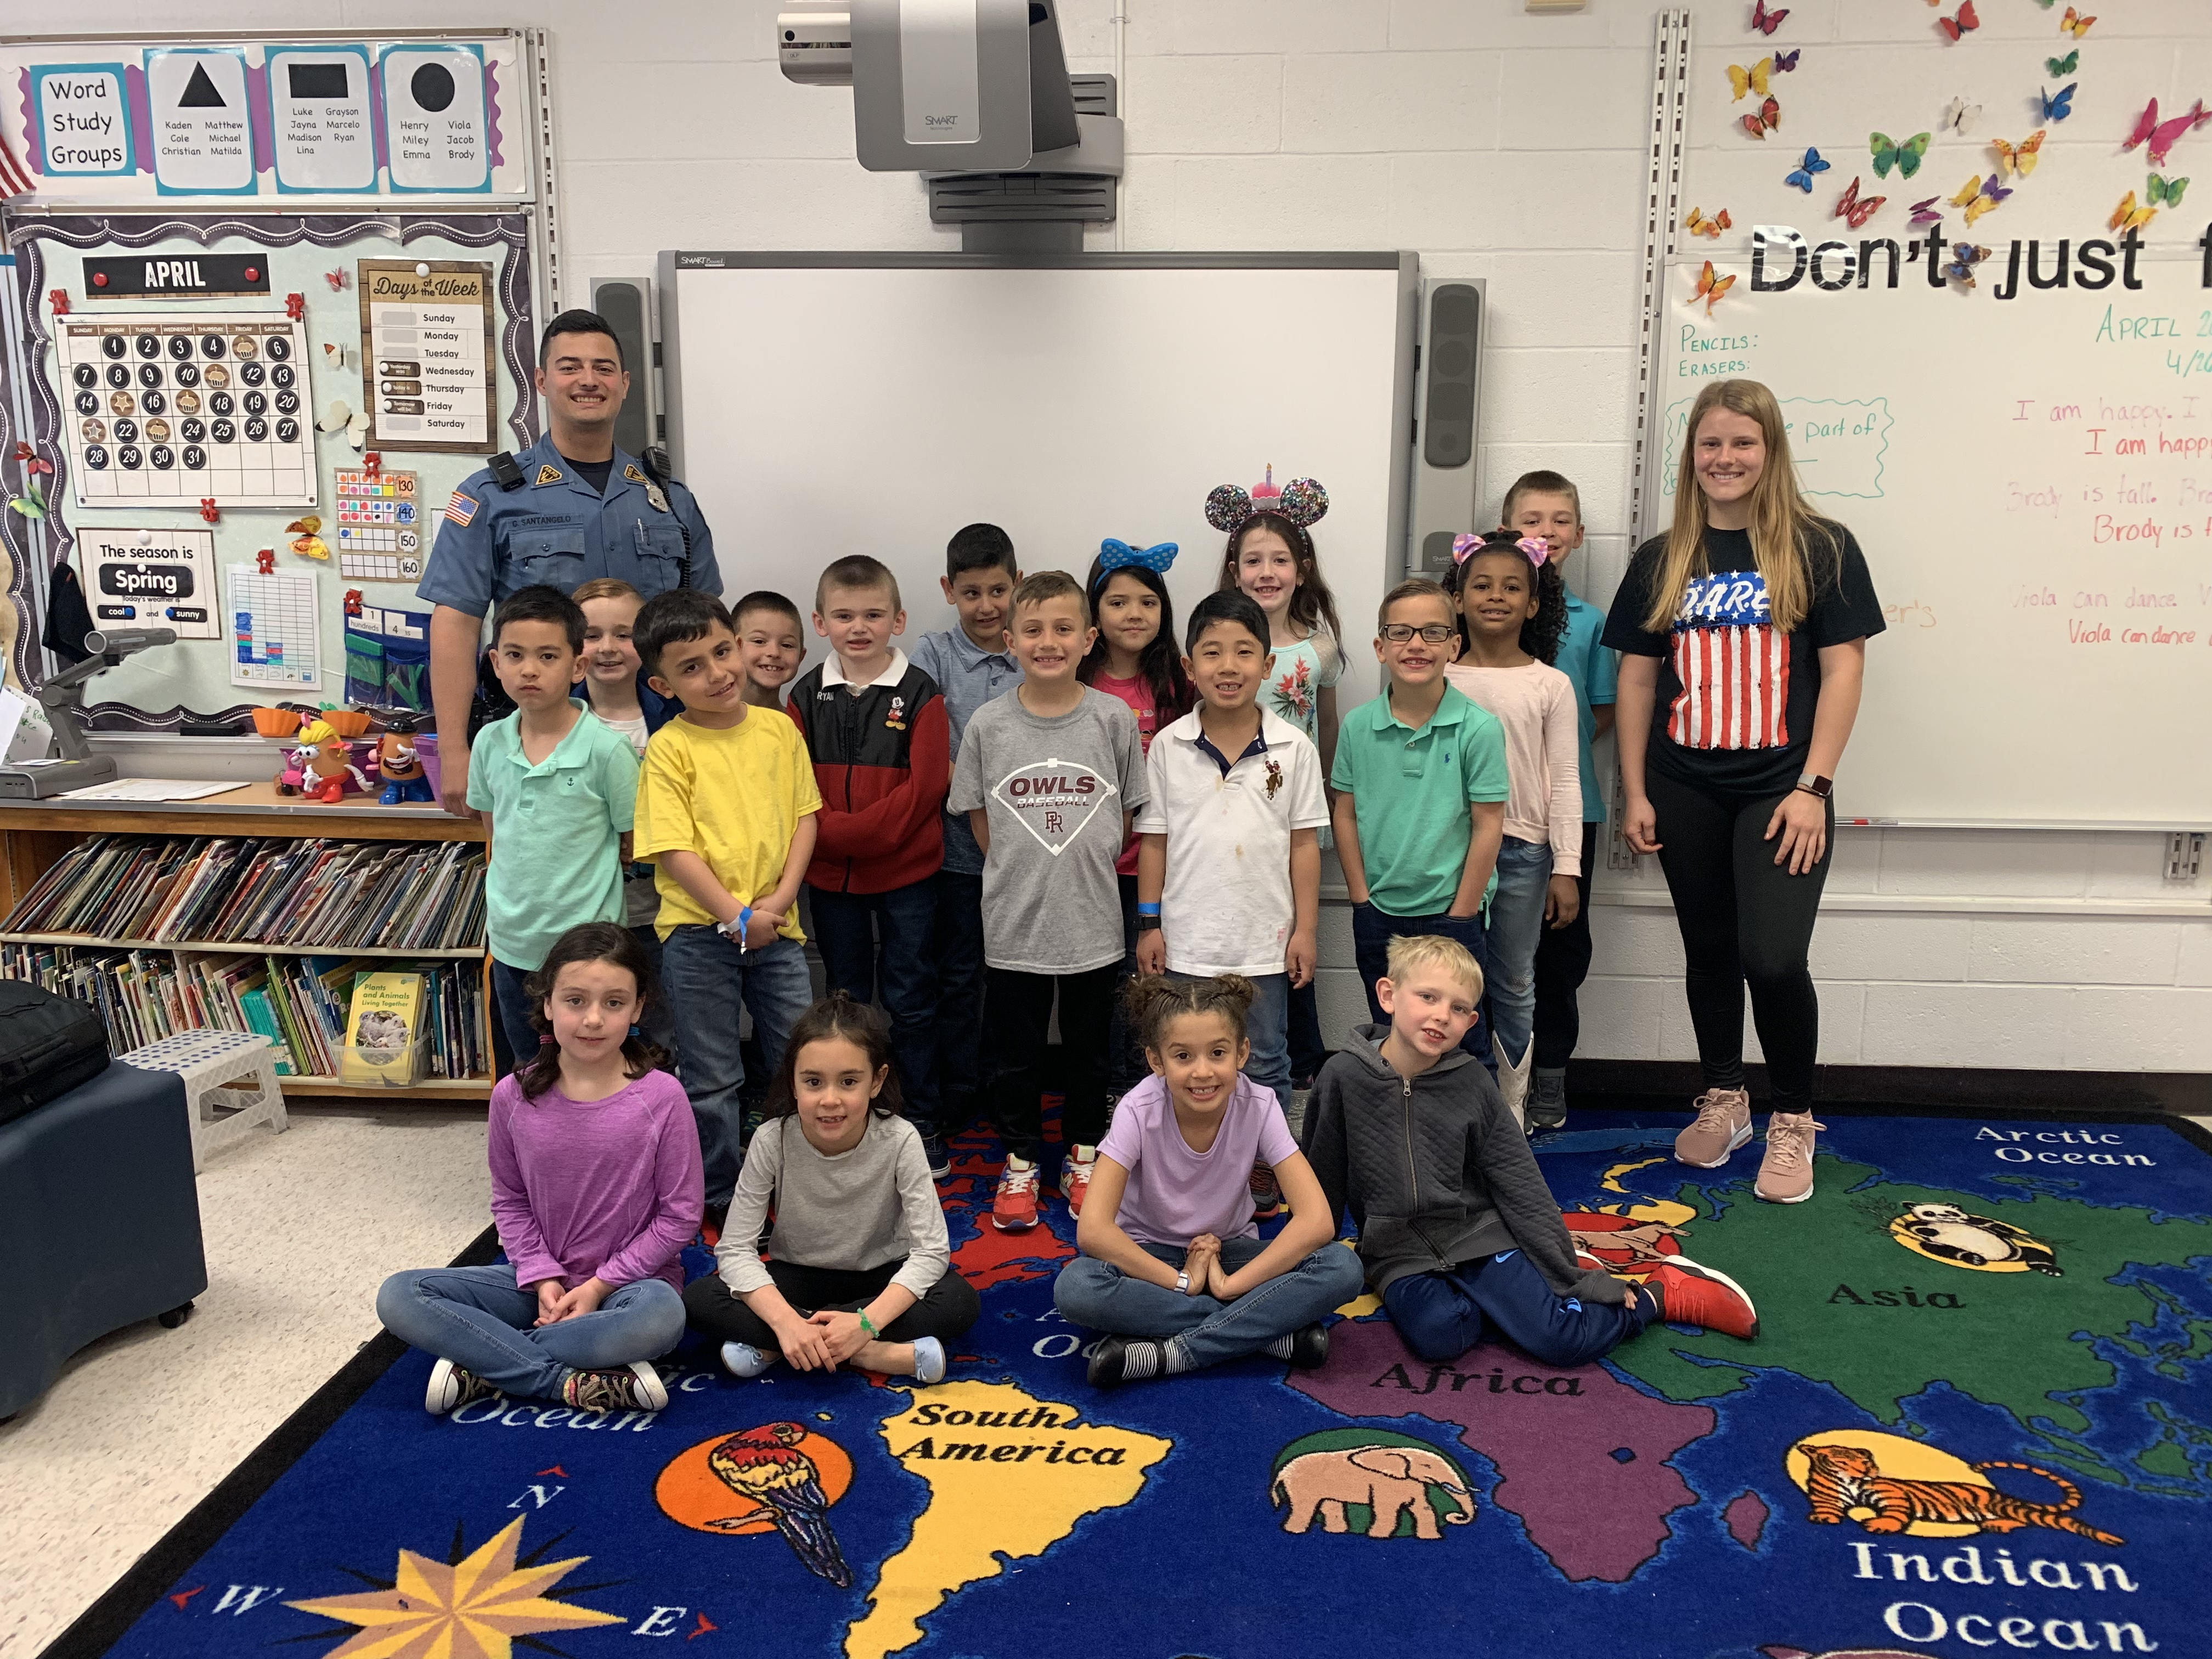 Report From Julia Manning, D.a.r.e. Youth Advocacy Board For Eastern York Sd First Day Of School